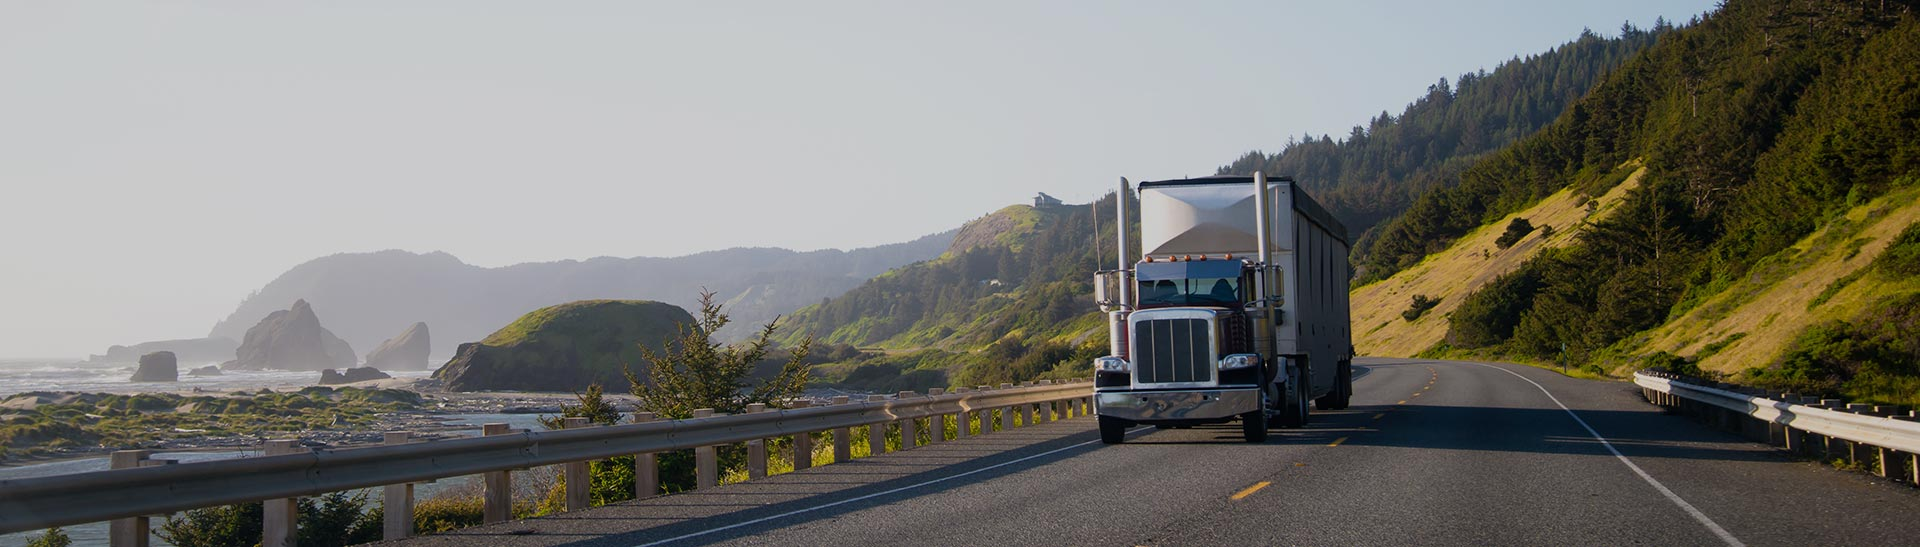 Cleveland Trucking Company, Trucking Services and Freight Forwarding Services